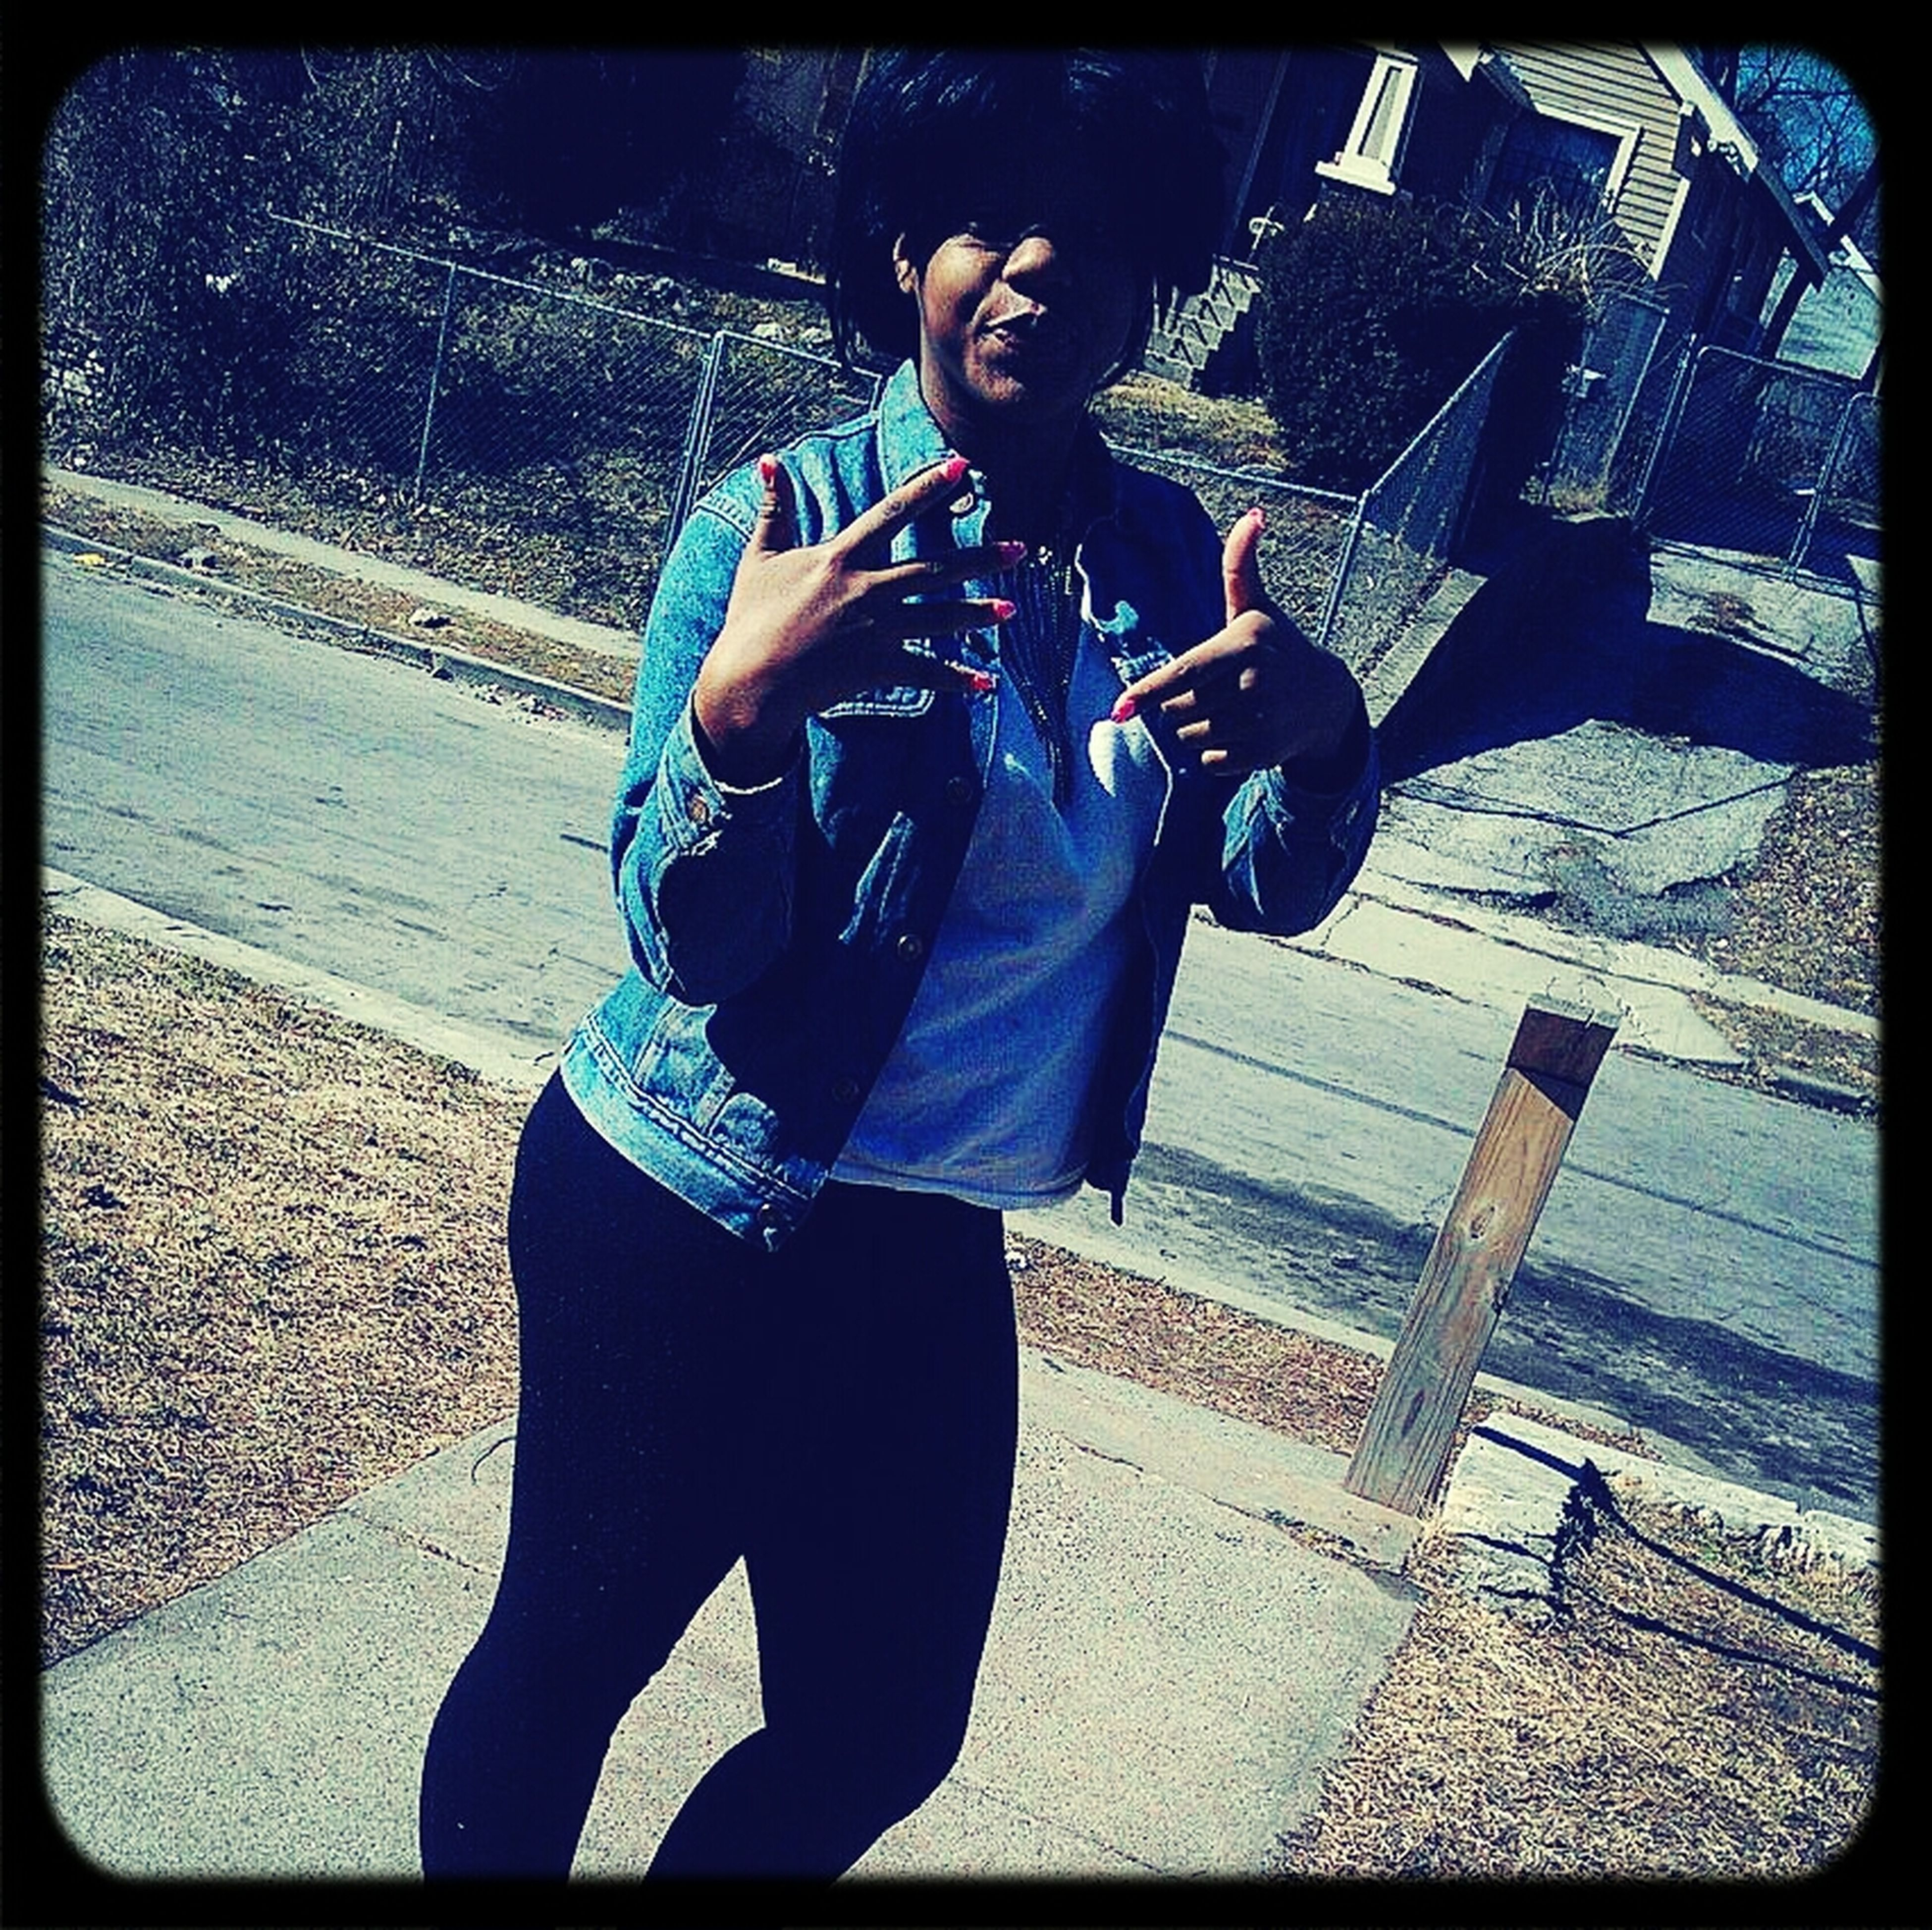 , 5s up :)